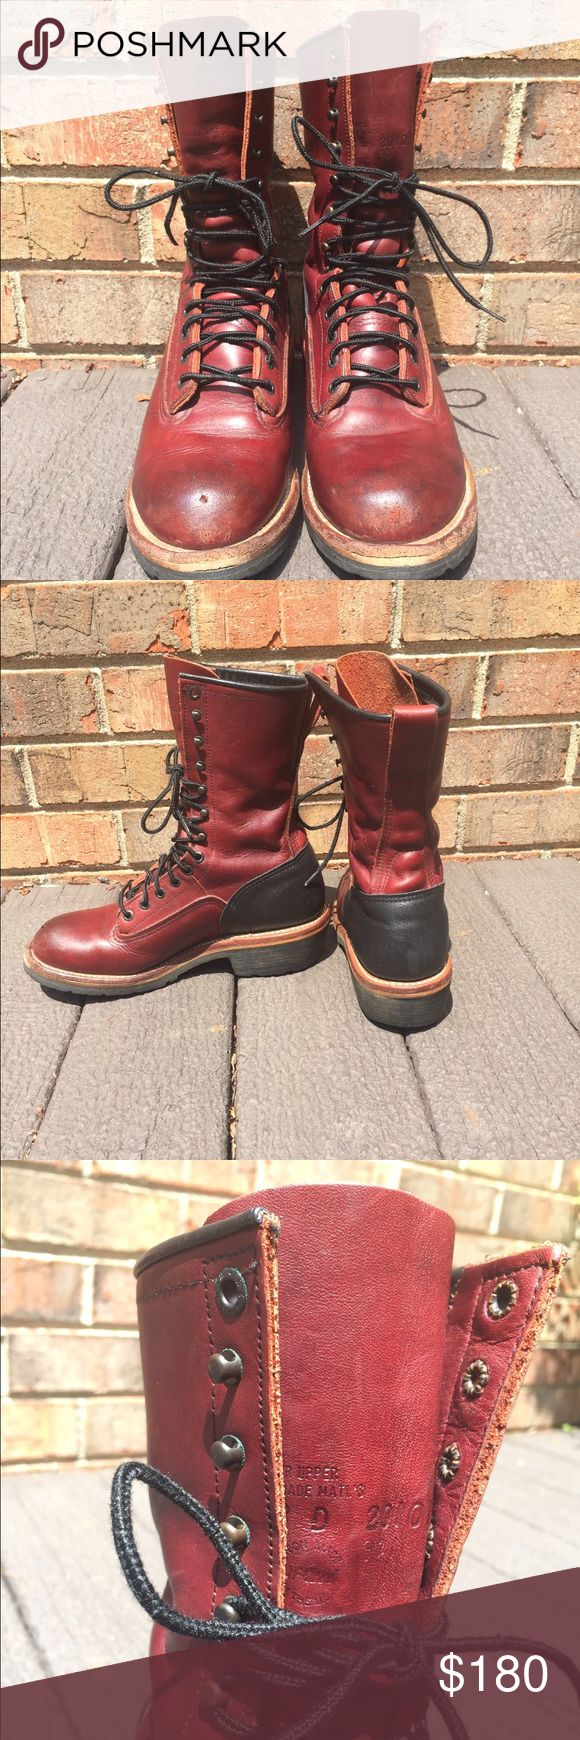 Men's Vintage Red Wing Boots EXCELLENT CONDITION. These are a men's size 8D or a women's size 9, all real leather Crimson boot w black accents!! I polished and cleaned these up myself after purchasing from a thrift store. Really really want to sell these!!! Price is somewhat negotiable. Comment if you have any questions please 💗 Red Wing Shoes Shoes Boots